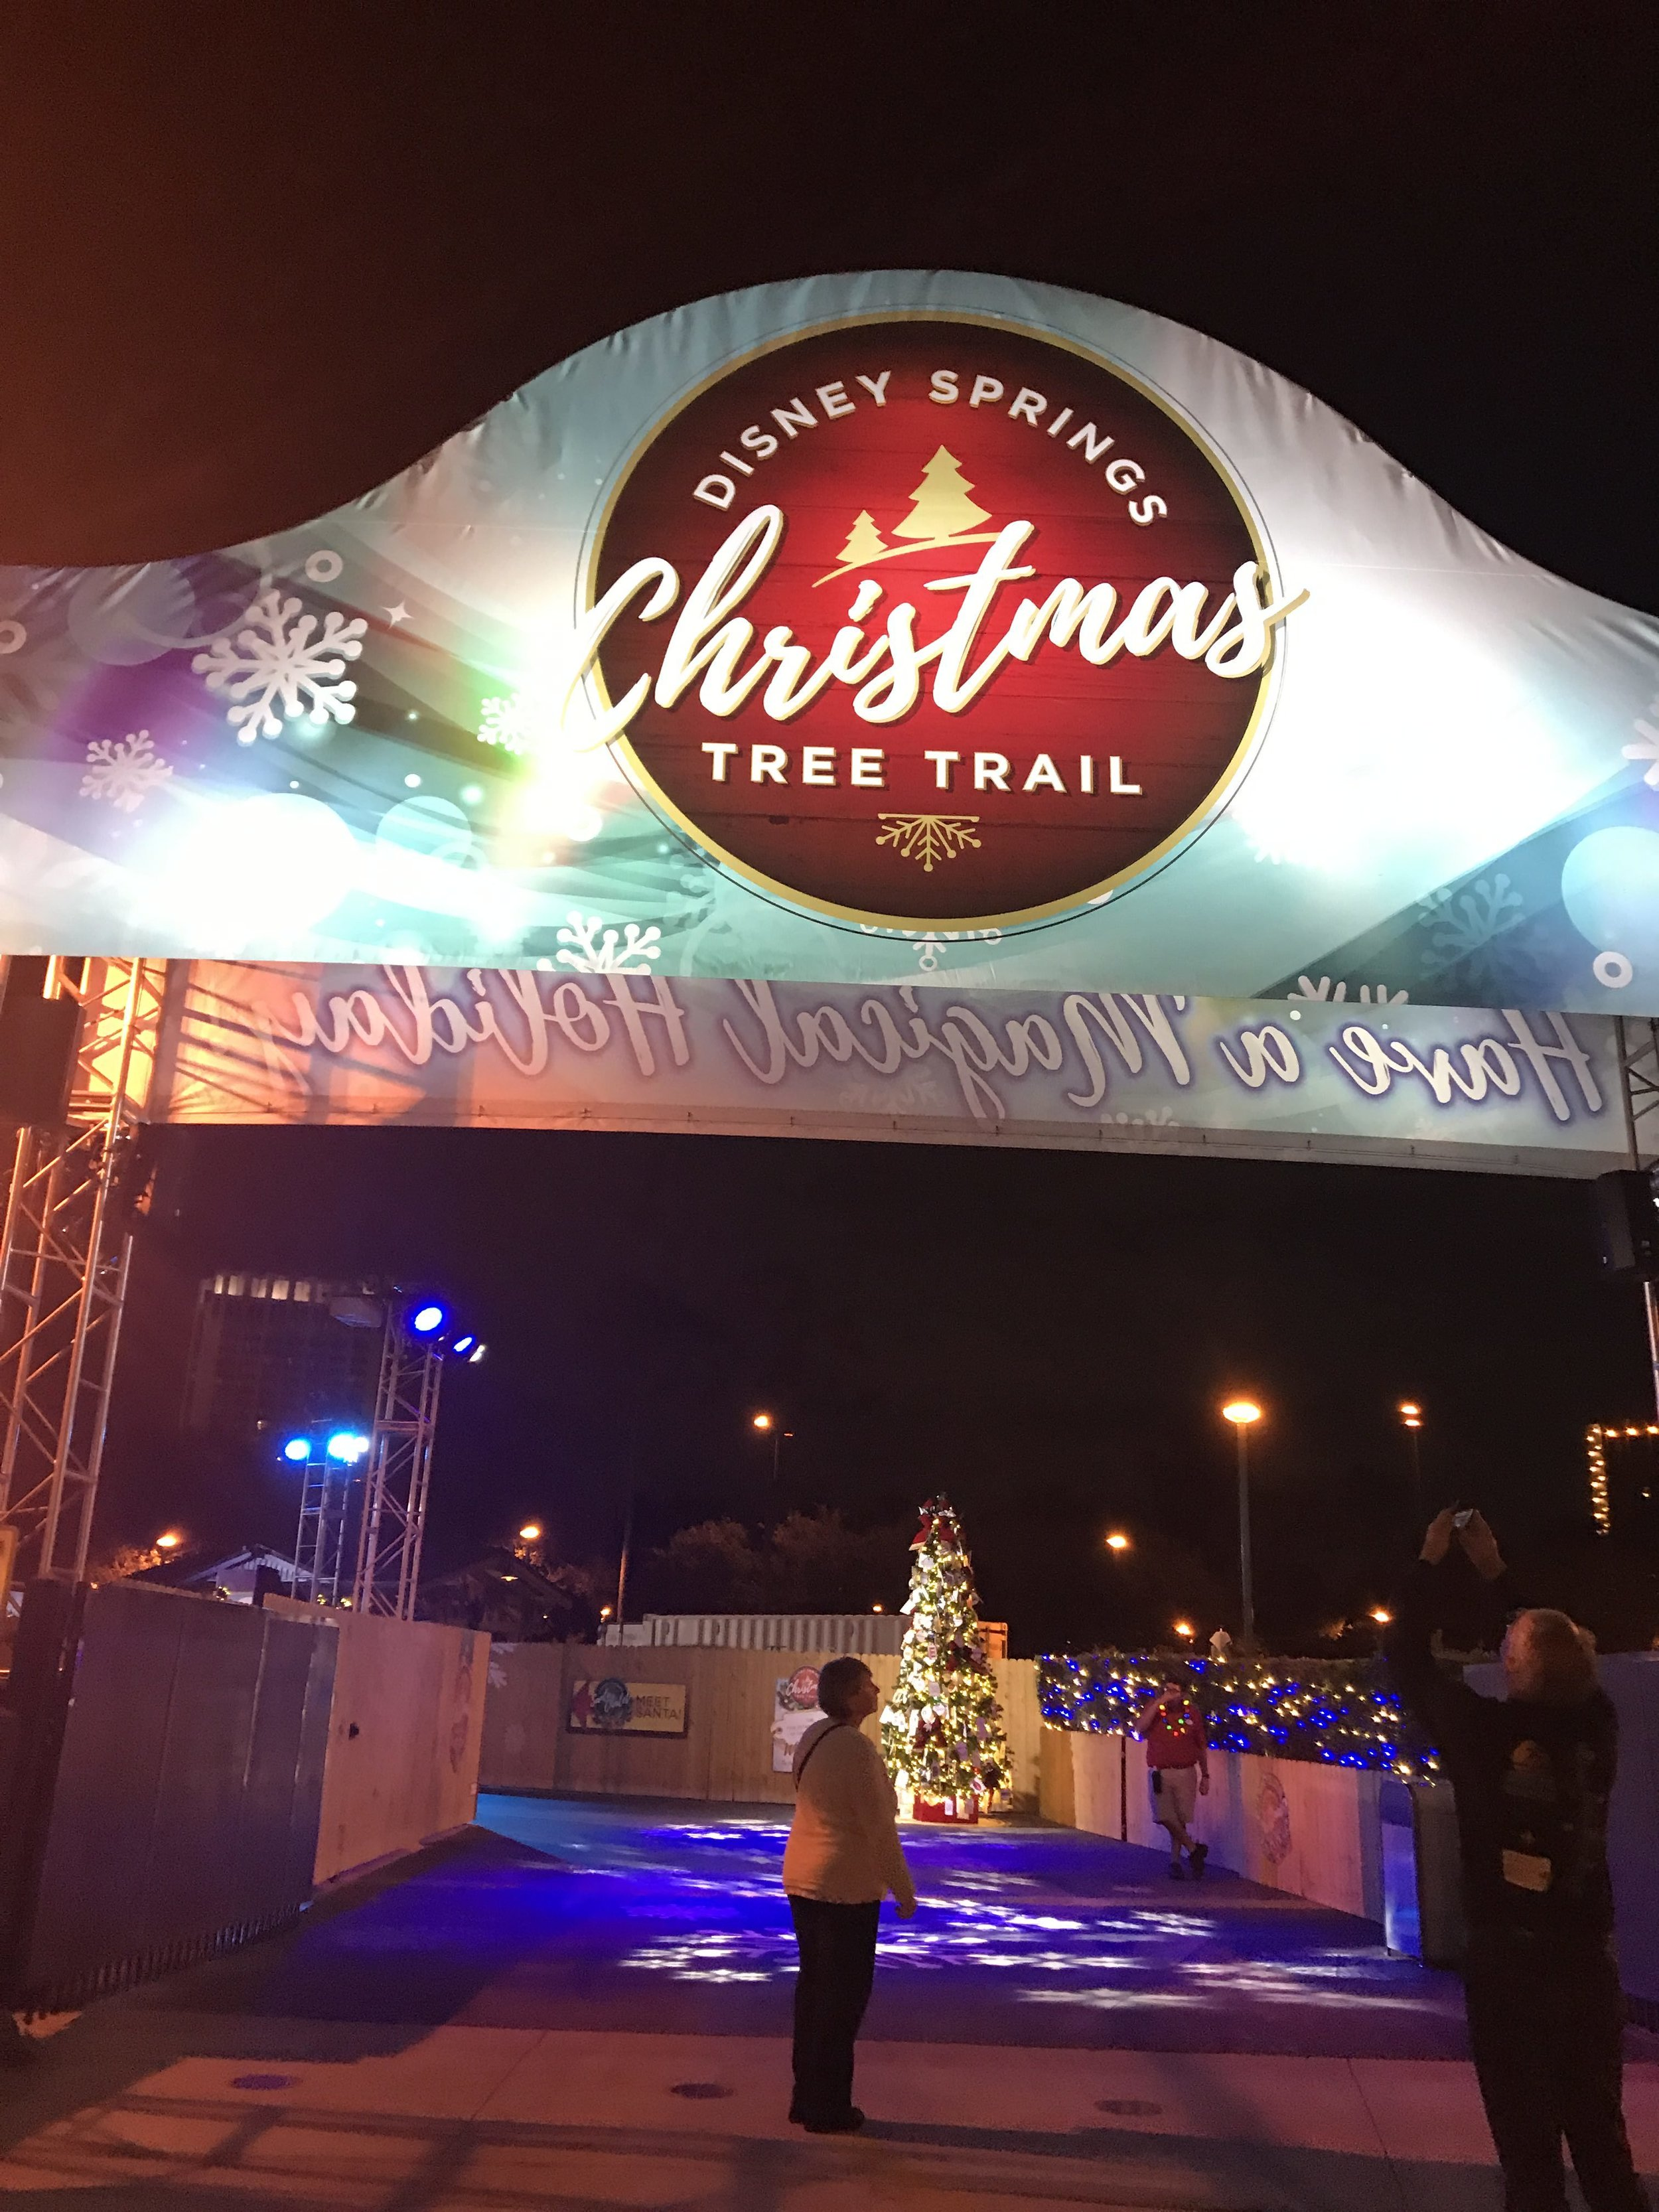 Christmas Tree Trail entrance - just outside of Earl of Sandwich and across from the VOID. Extremely close to Hilton Orlando Buena Vista Palace and the Hilton Orlando Lake Buena Vista